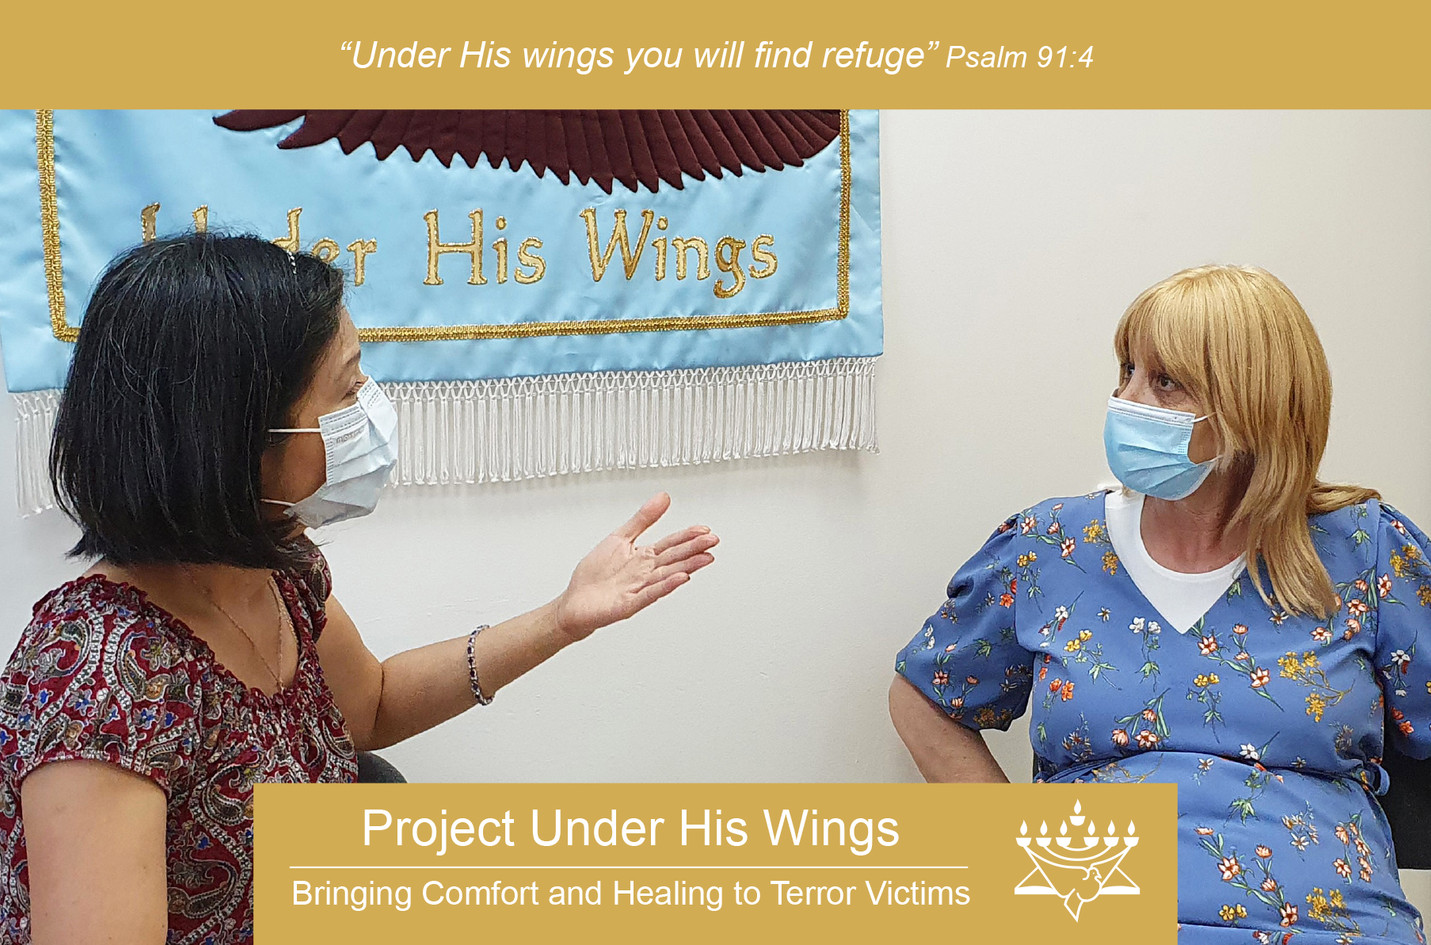 CFI Project Under His Wings.jpg